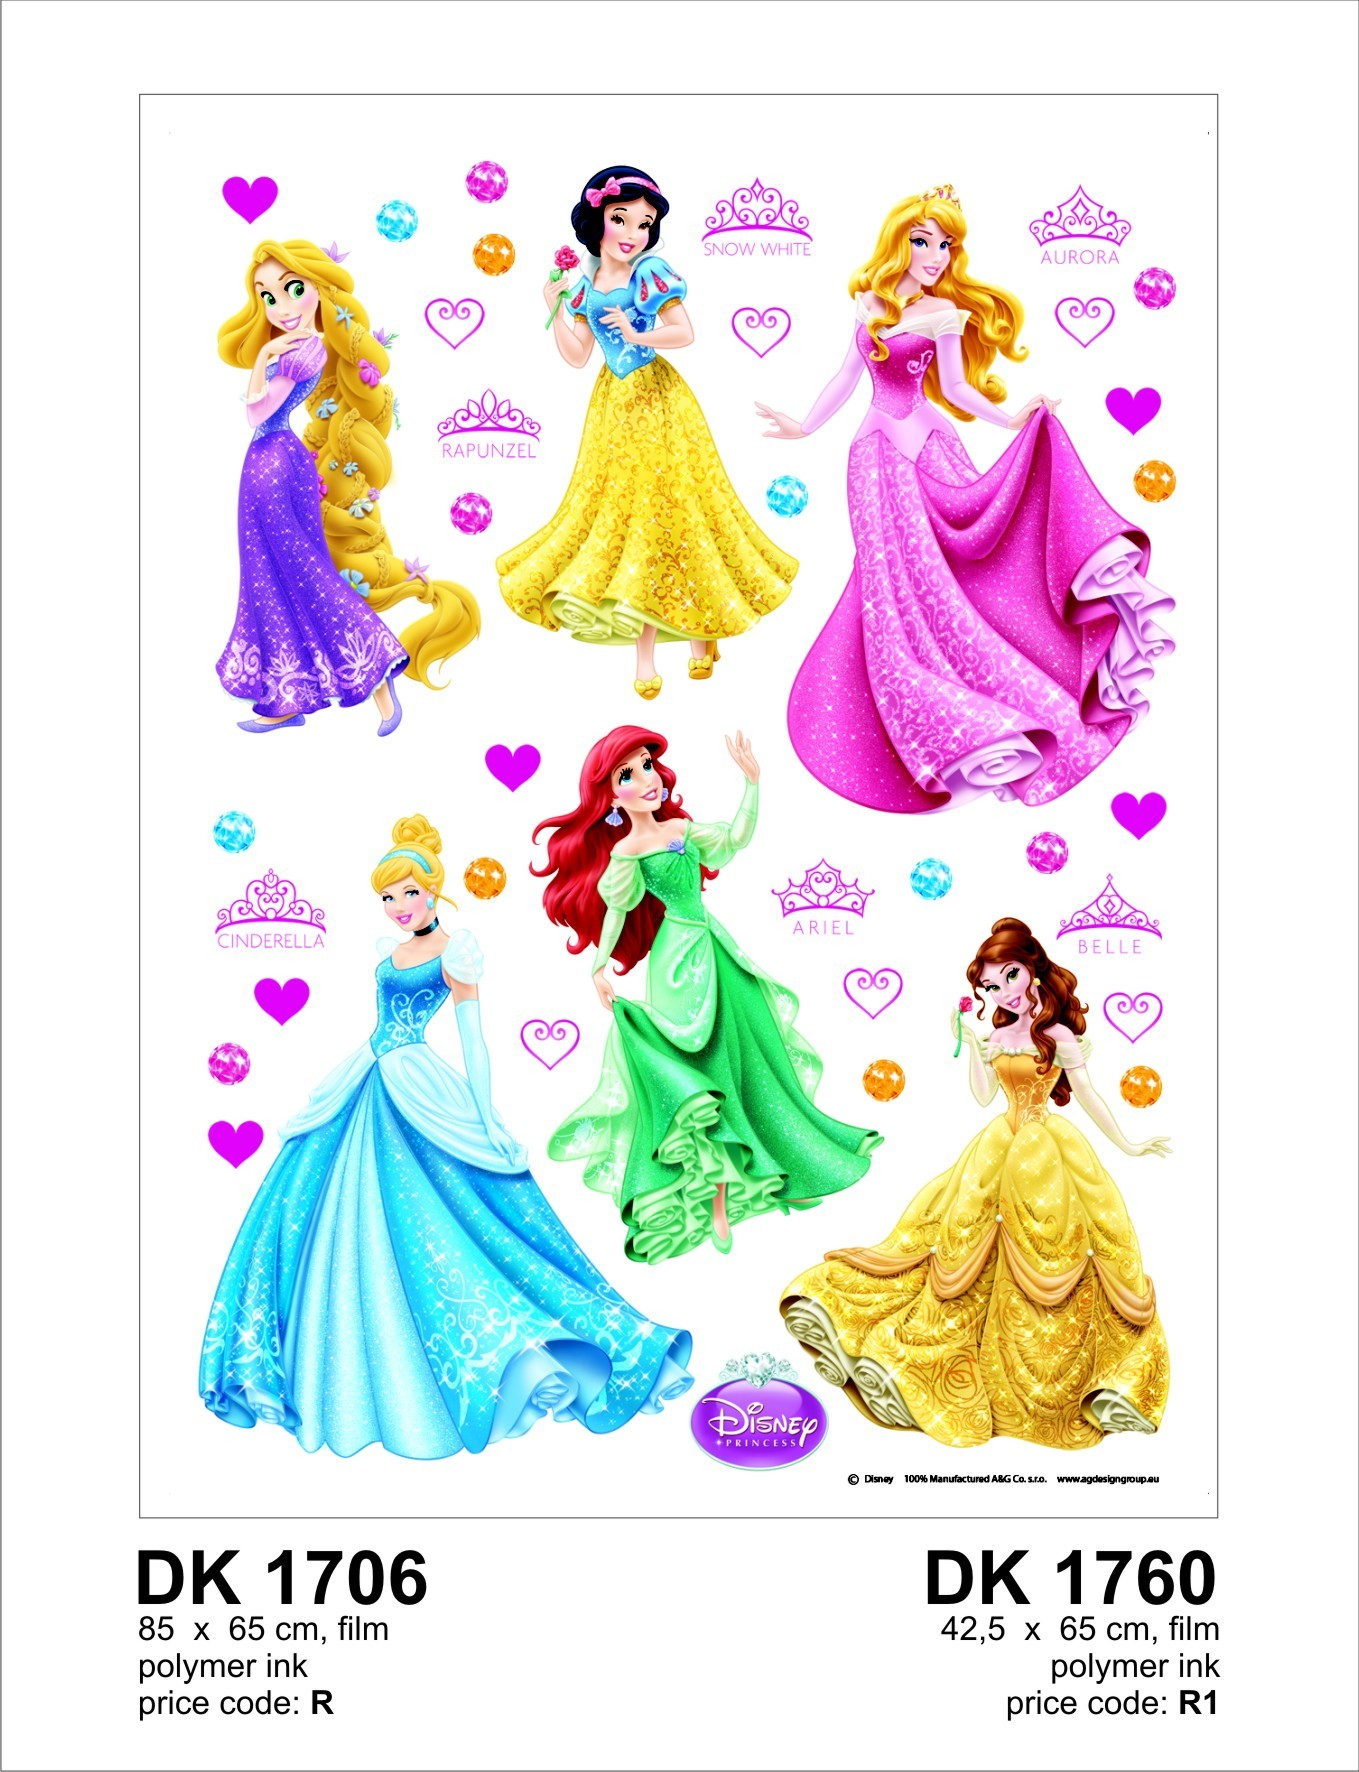 kinder wandsticker wandtattoo kinderdeko disney prinzessin. Black Bedroom Furniture Sets. Home Design Ideas